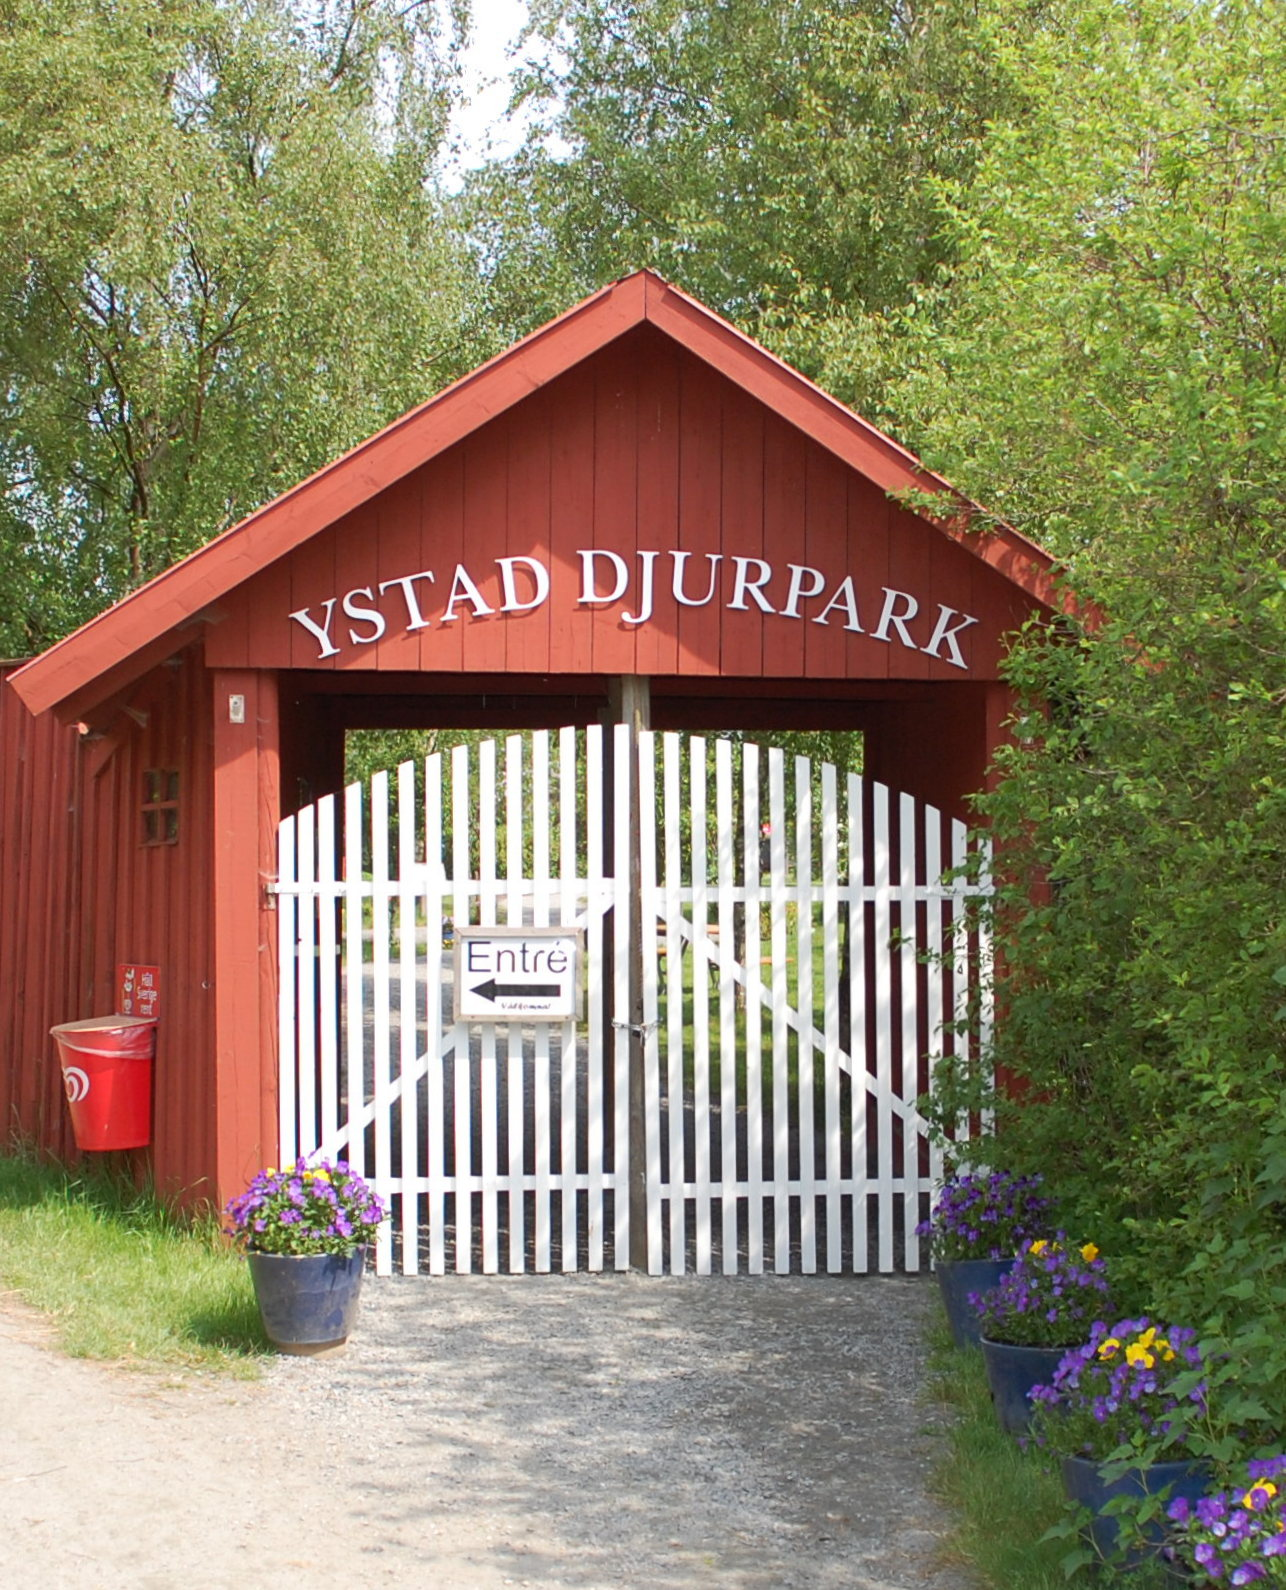 dating Ystad